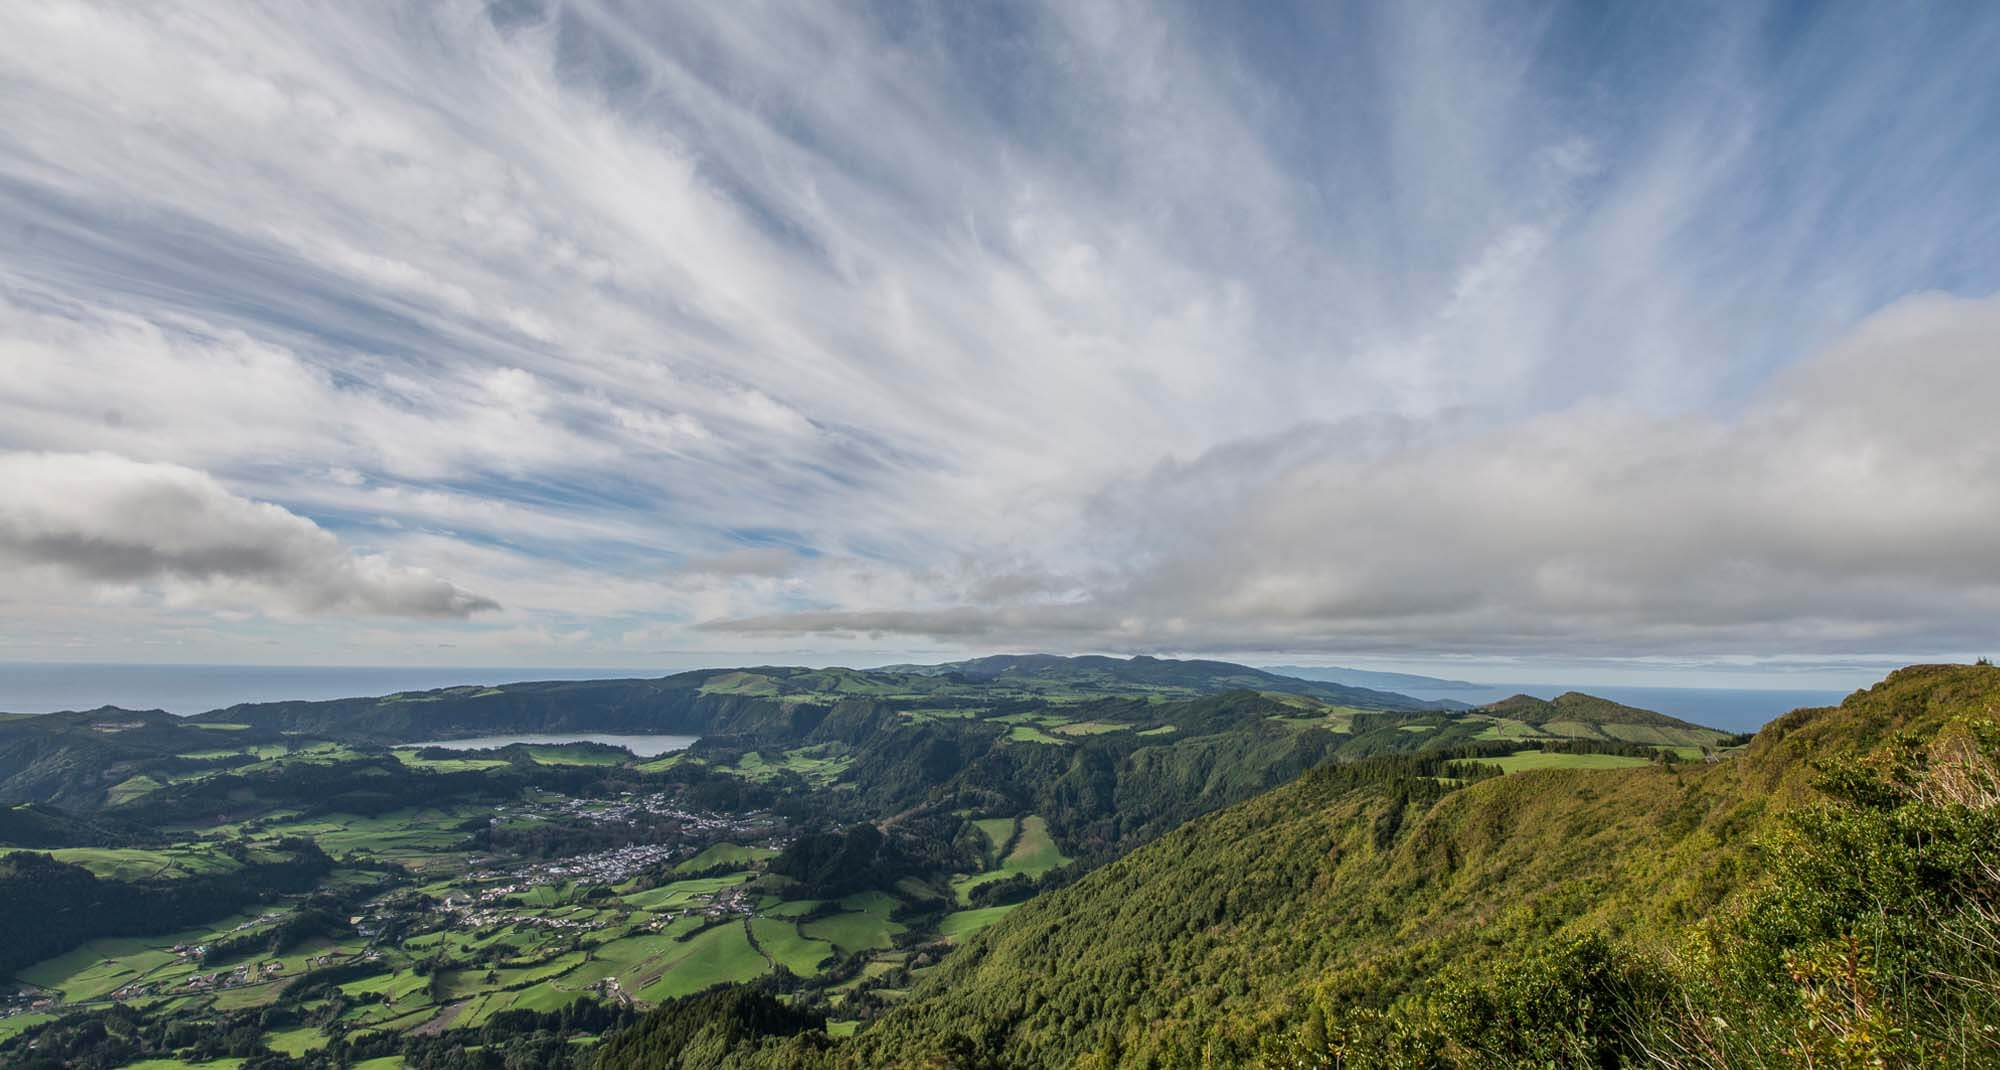 Views from Salto do Cavalo lookout, Sao Miguel